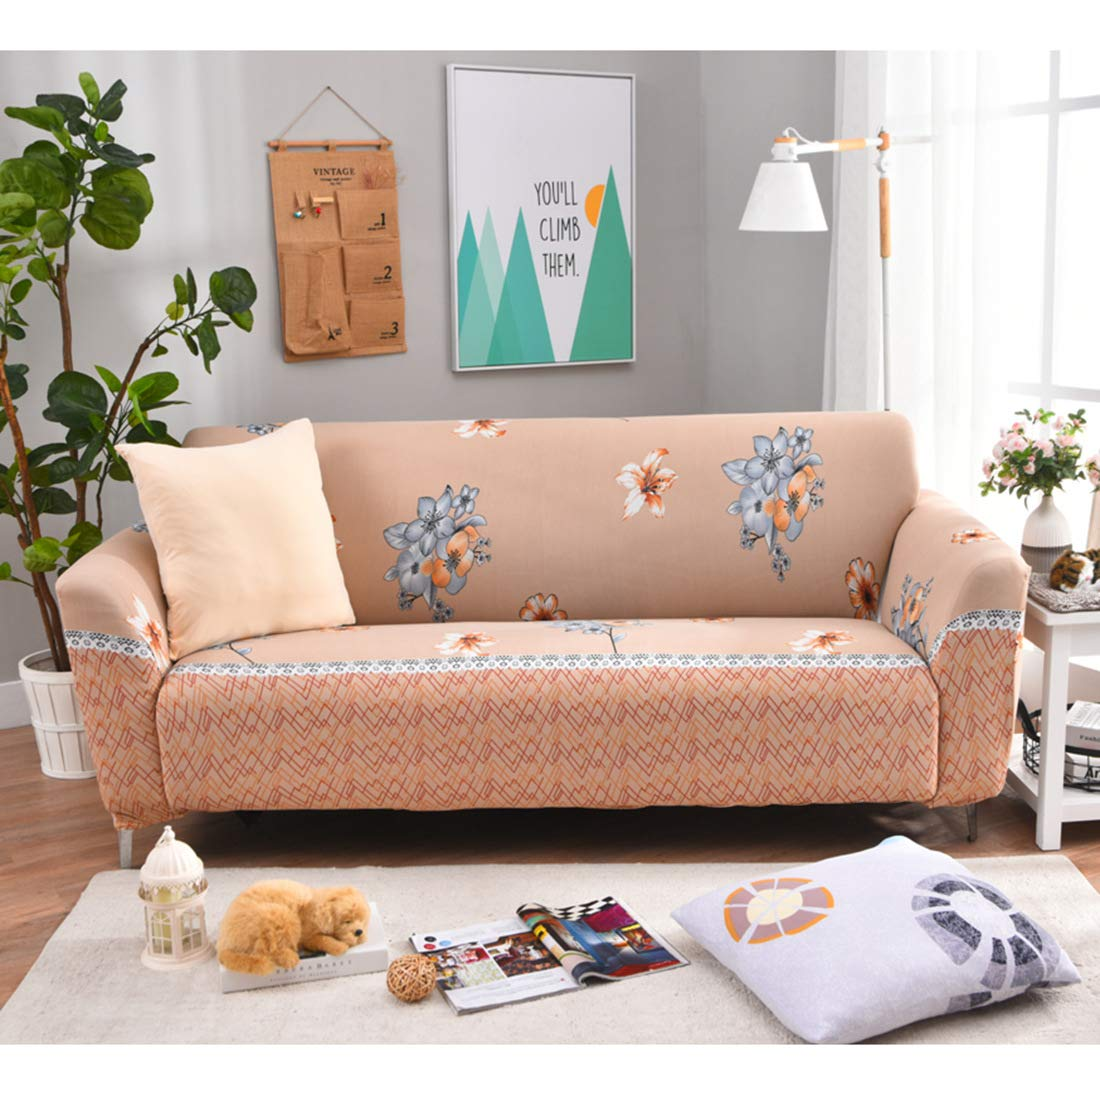 Royhom Sofa Cover, Loveseat Cover, Chair Cover, Elasticity Furniture Protector, Patchwork Cover, Stain Resistant, Machine Washable/Apricot, Loveseat Cover